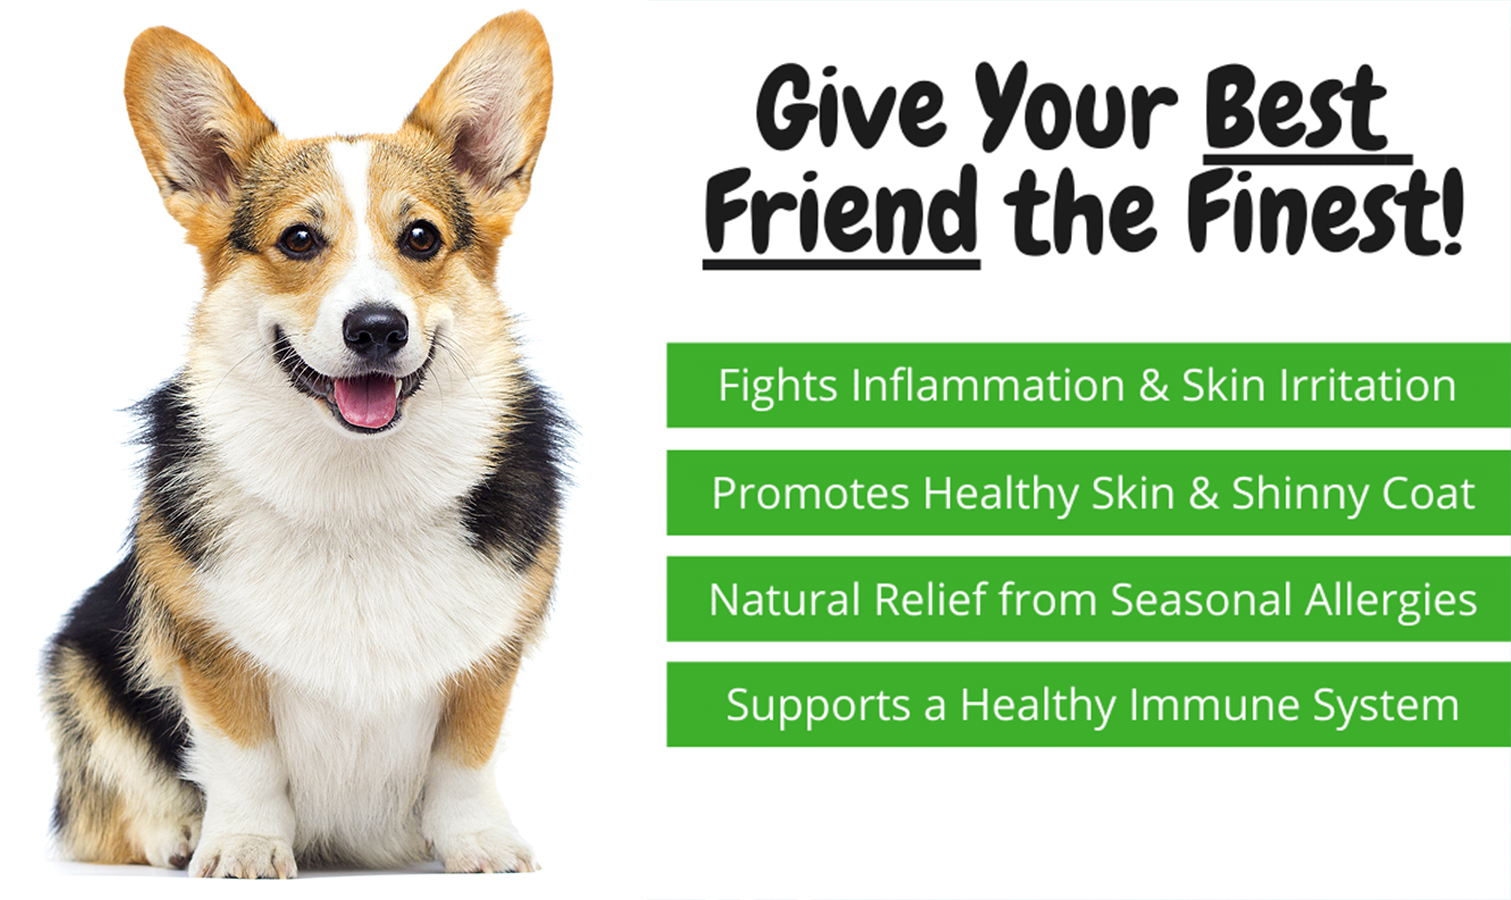 4 benefits of giving your dog CBD to treat allergies